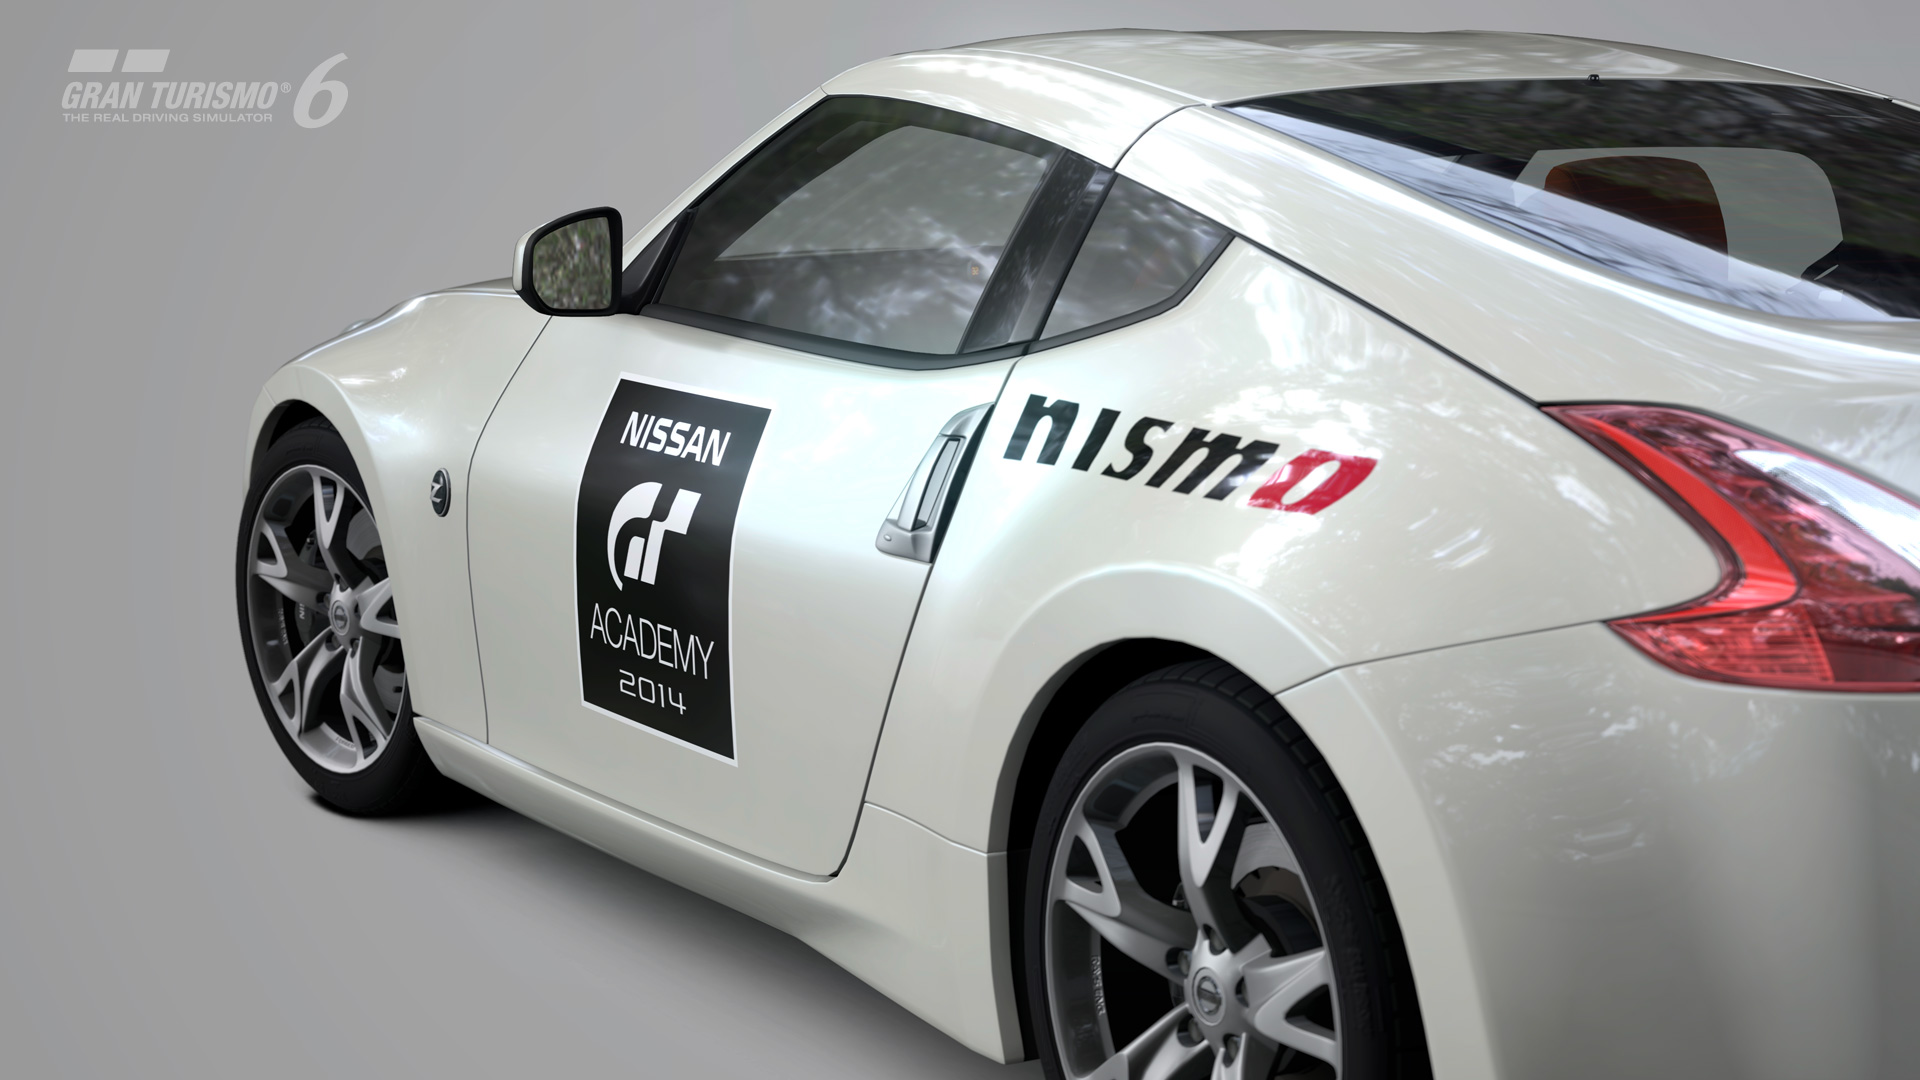 Gran Turismo gamers race in real life — and win